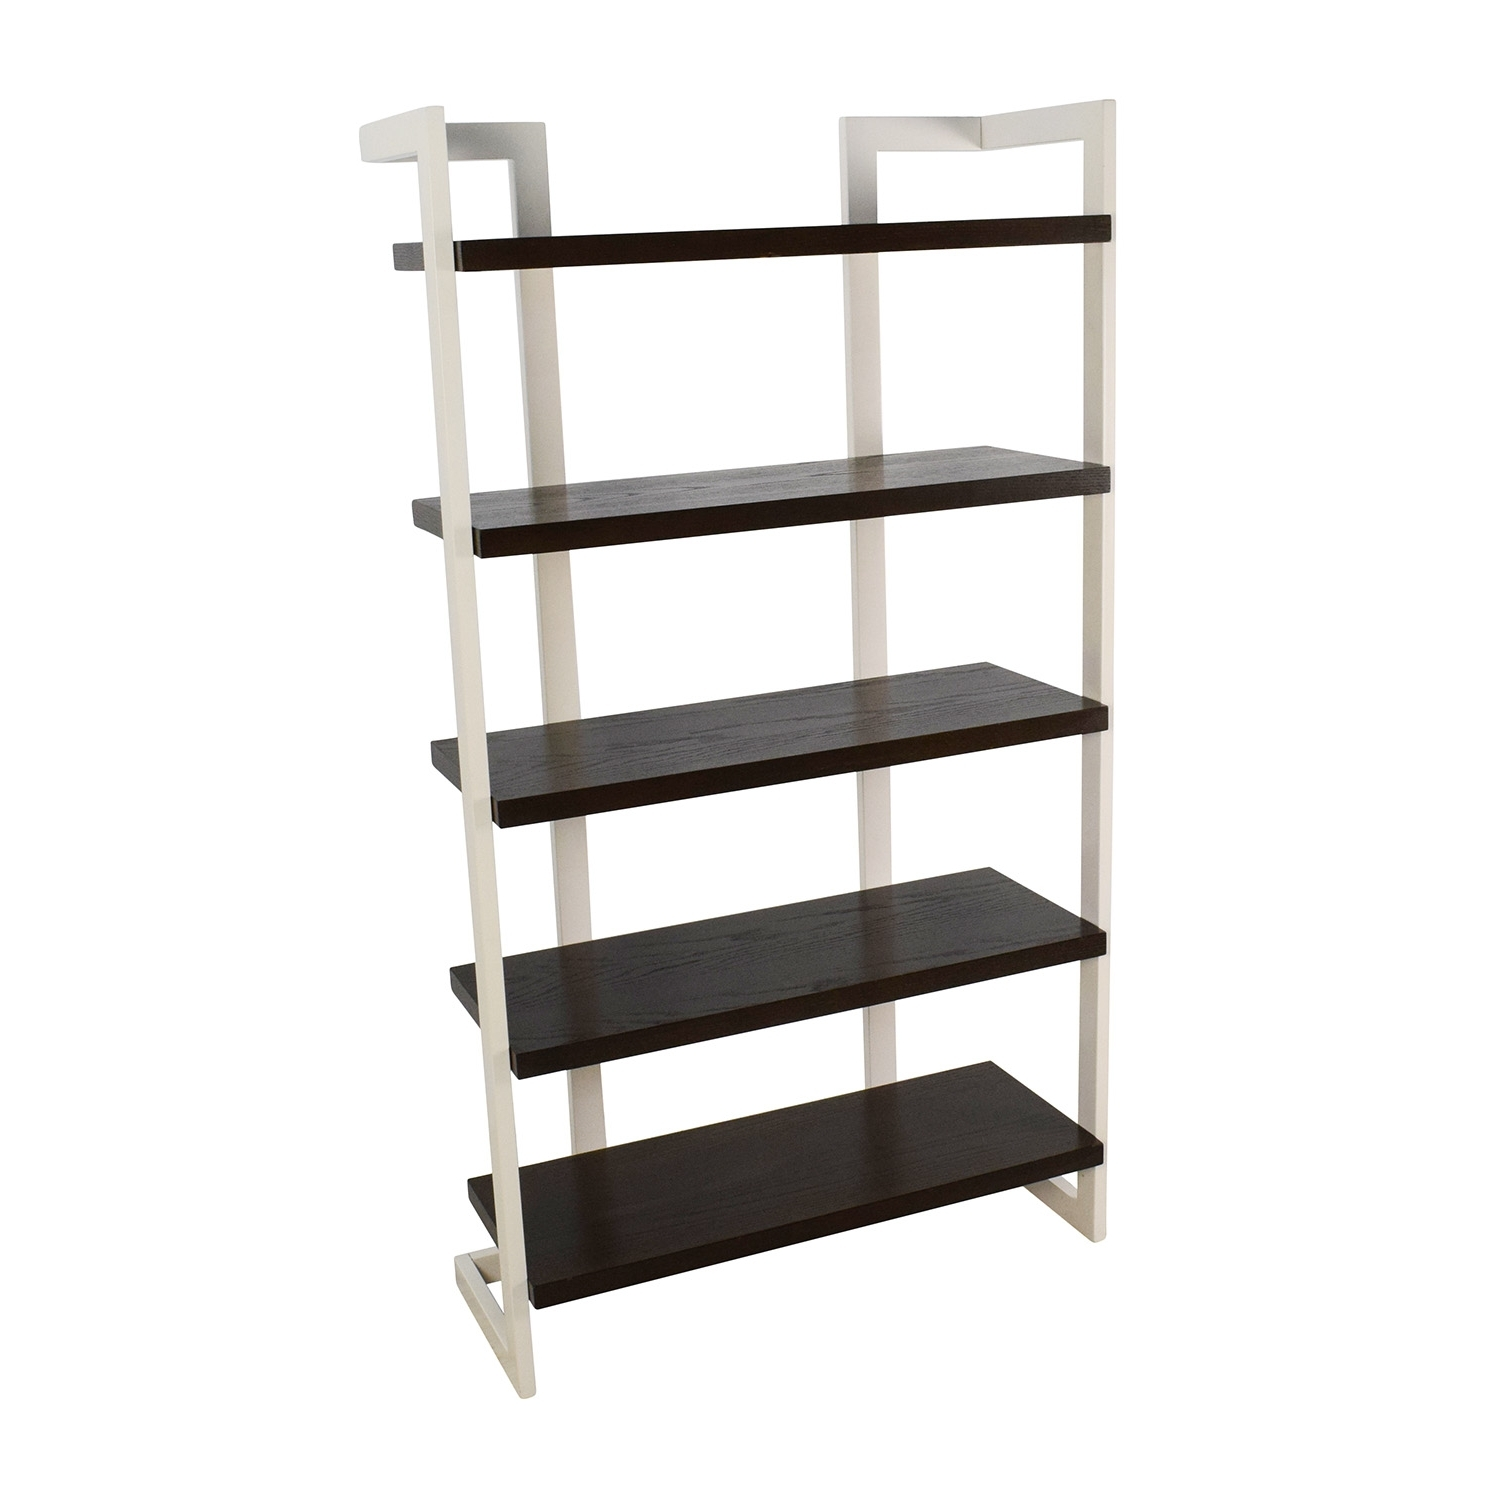 [%56% Off – West Elm West Elm Bookcase / Storage In Best And Newest West Elm Bookcases|West Elm Bookcases Throughout Most Recently Released 56% Off – West Elm West Elm Bookcase / Storage|2017 West Elm Bookcases With 56% Off – West Elm West Elm Bookcase / Storage|Trendy 56% Off – West Elm West Elm Bookcase / Storage Within West Elm Bookcases%] (View 1 of 15)